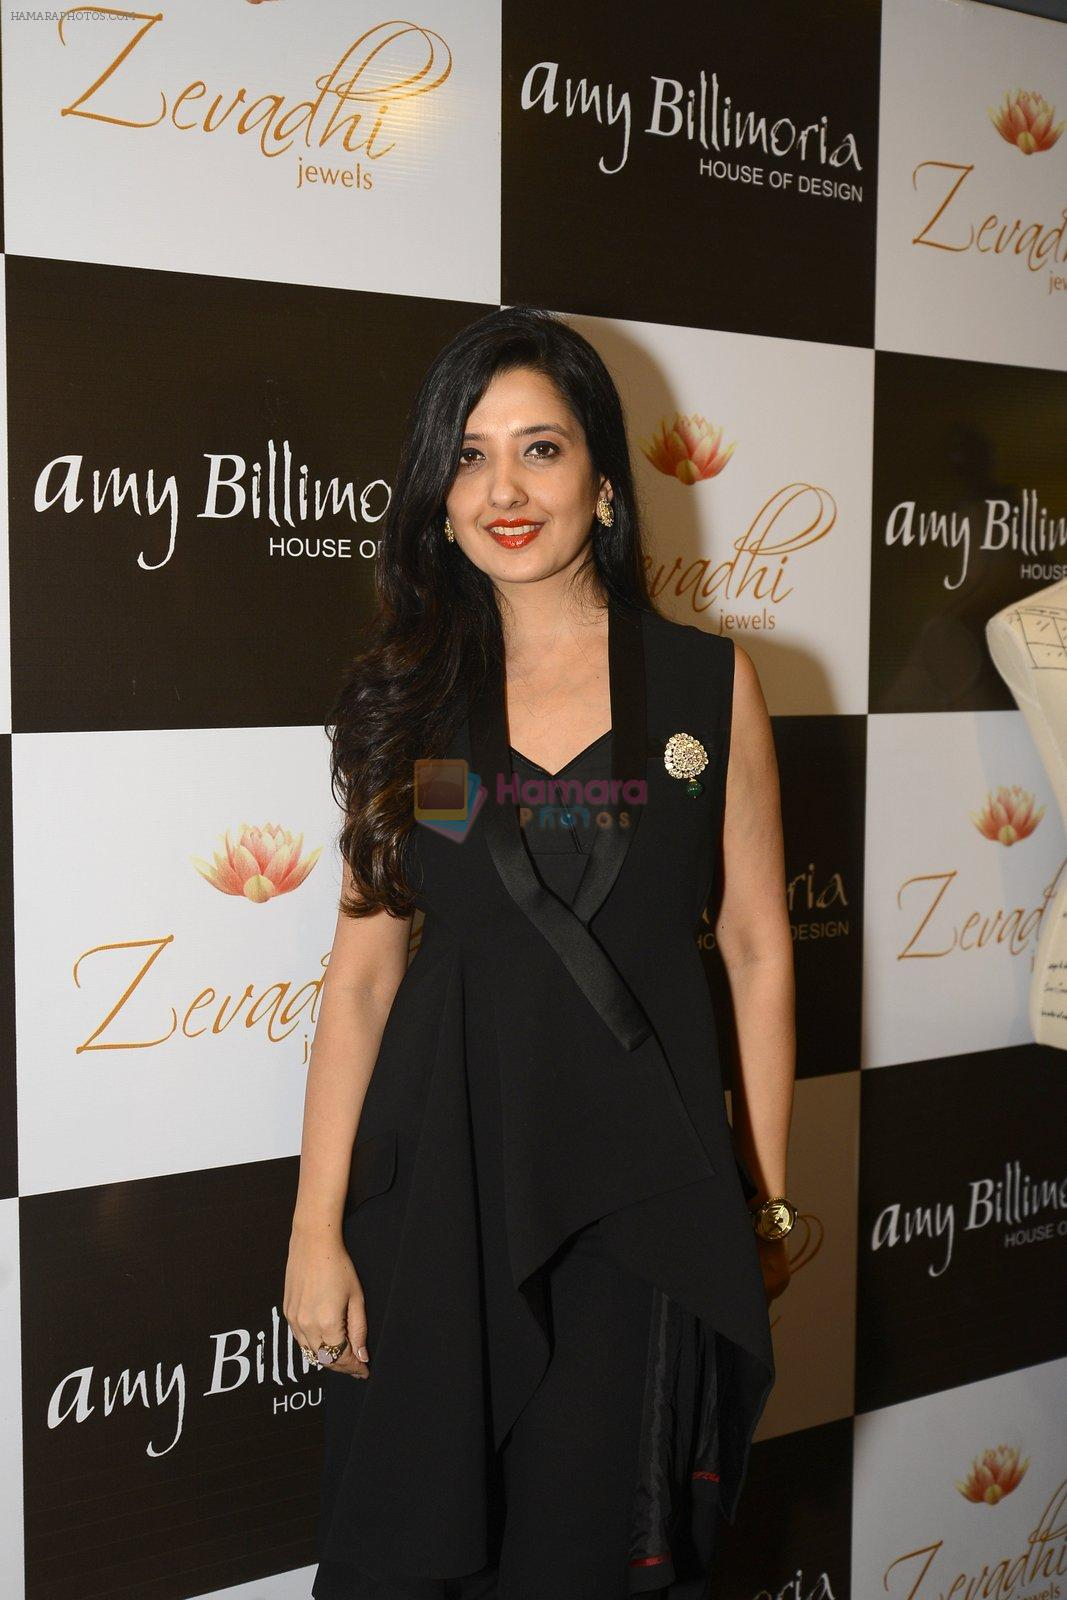 Amy Billimoria and Zevadhi Jewels launch on 22nd Aug 2016